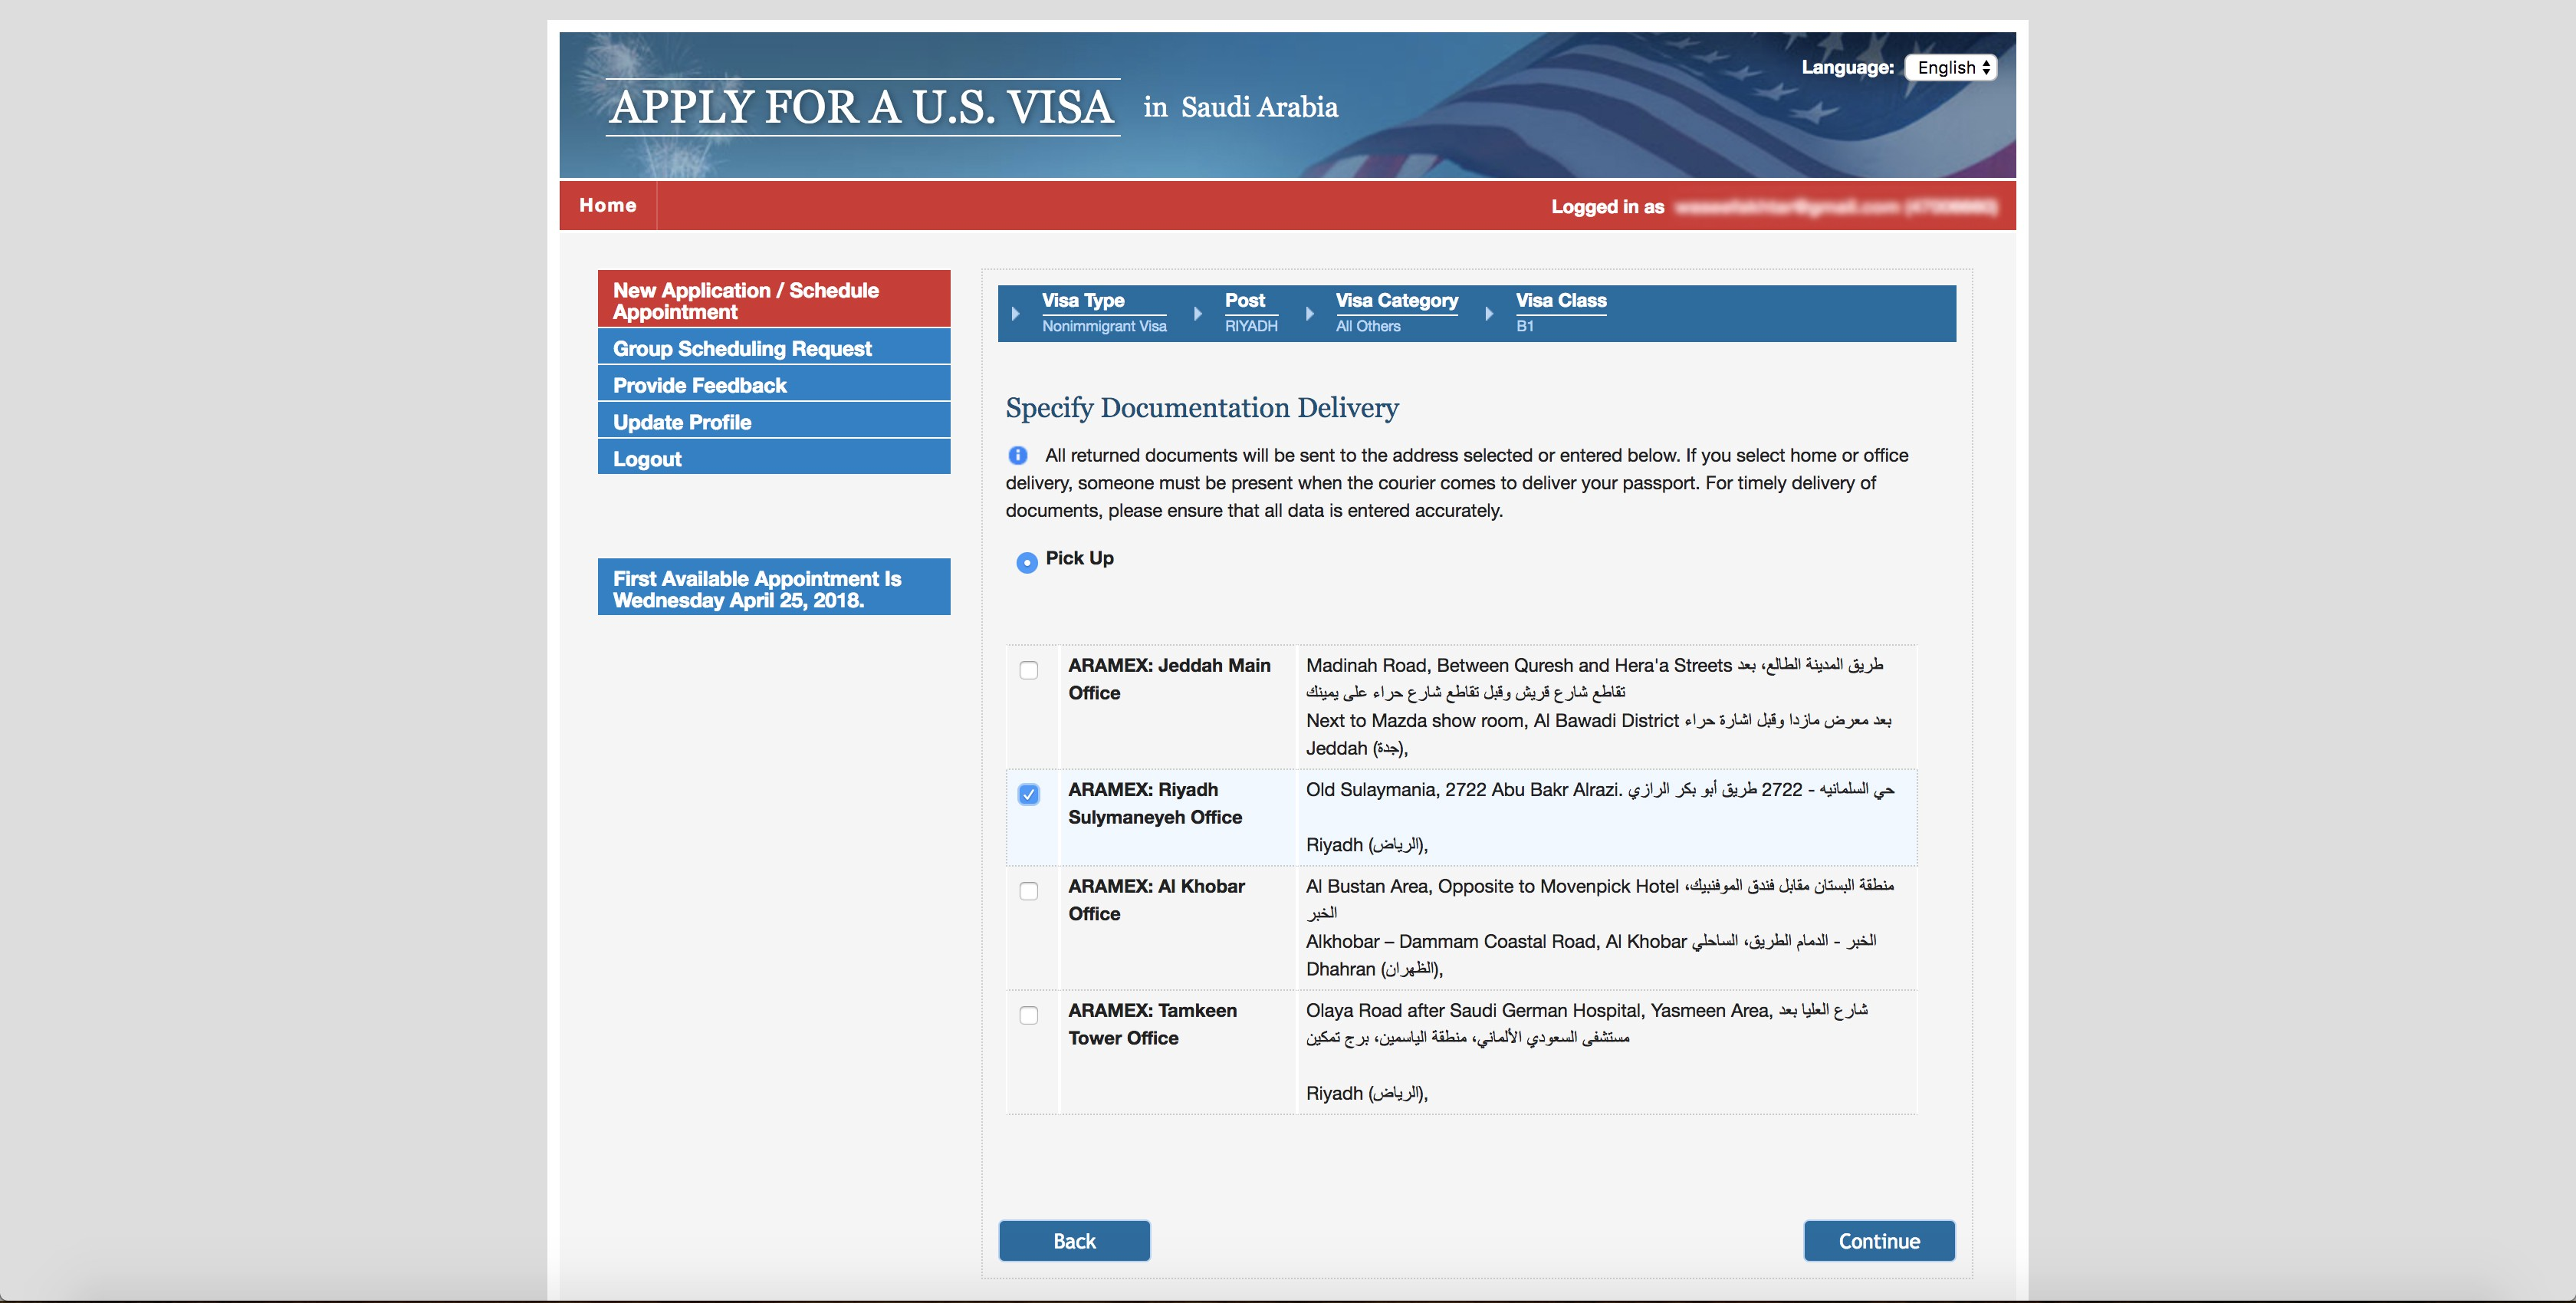 My Guide On Applying For B1 Visa For The Us From Saudi Arabia By Waseef Akhtar Medium